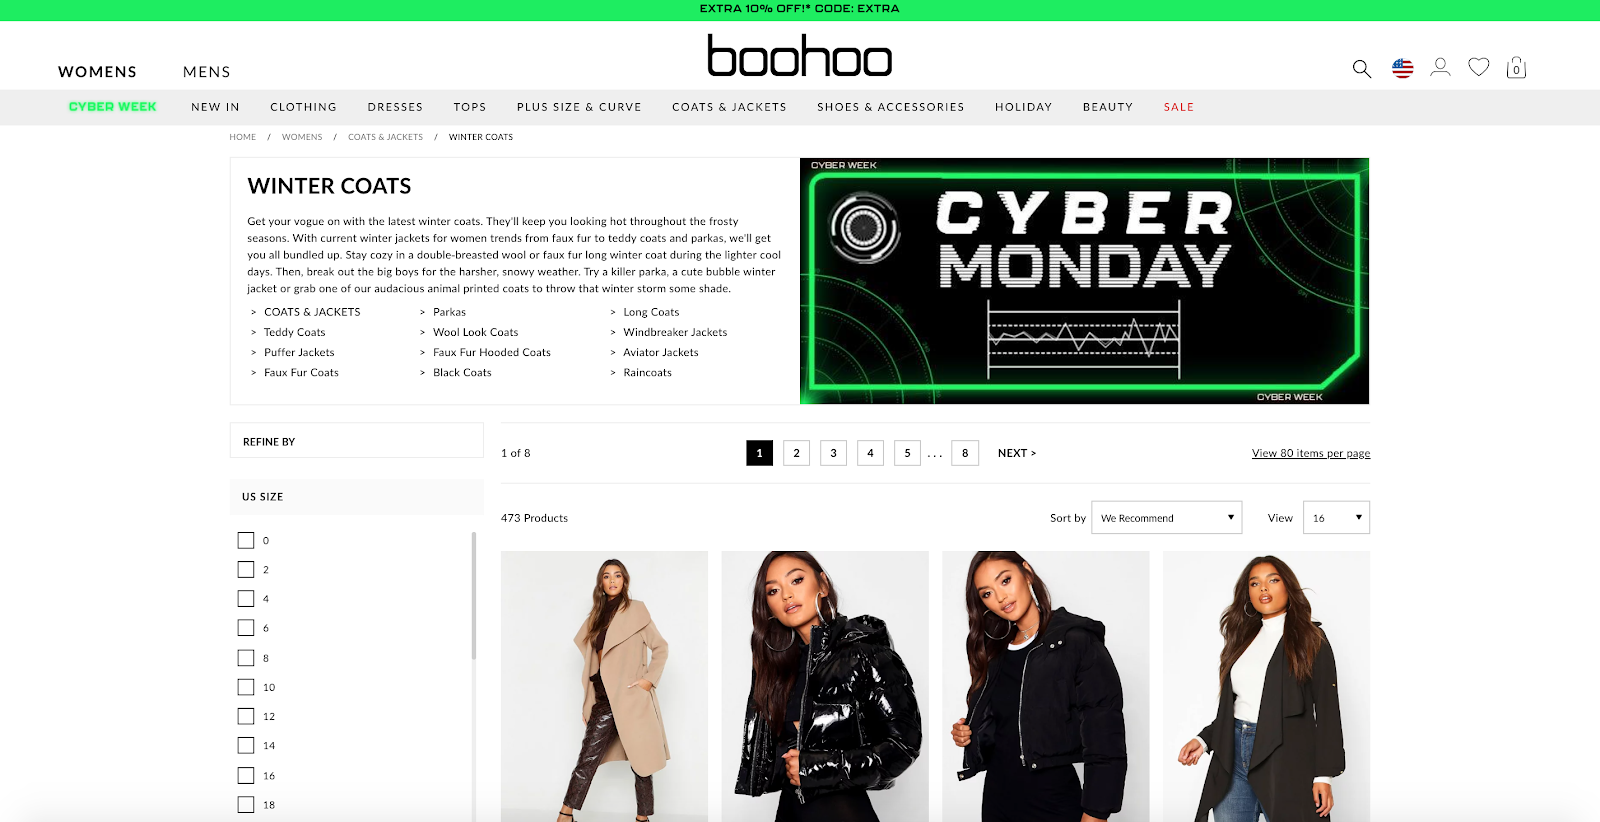 boohoo product listing page